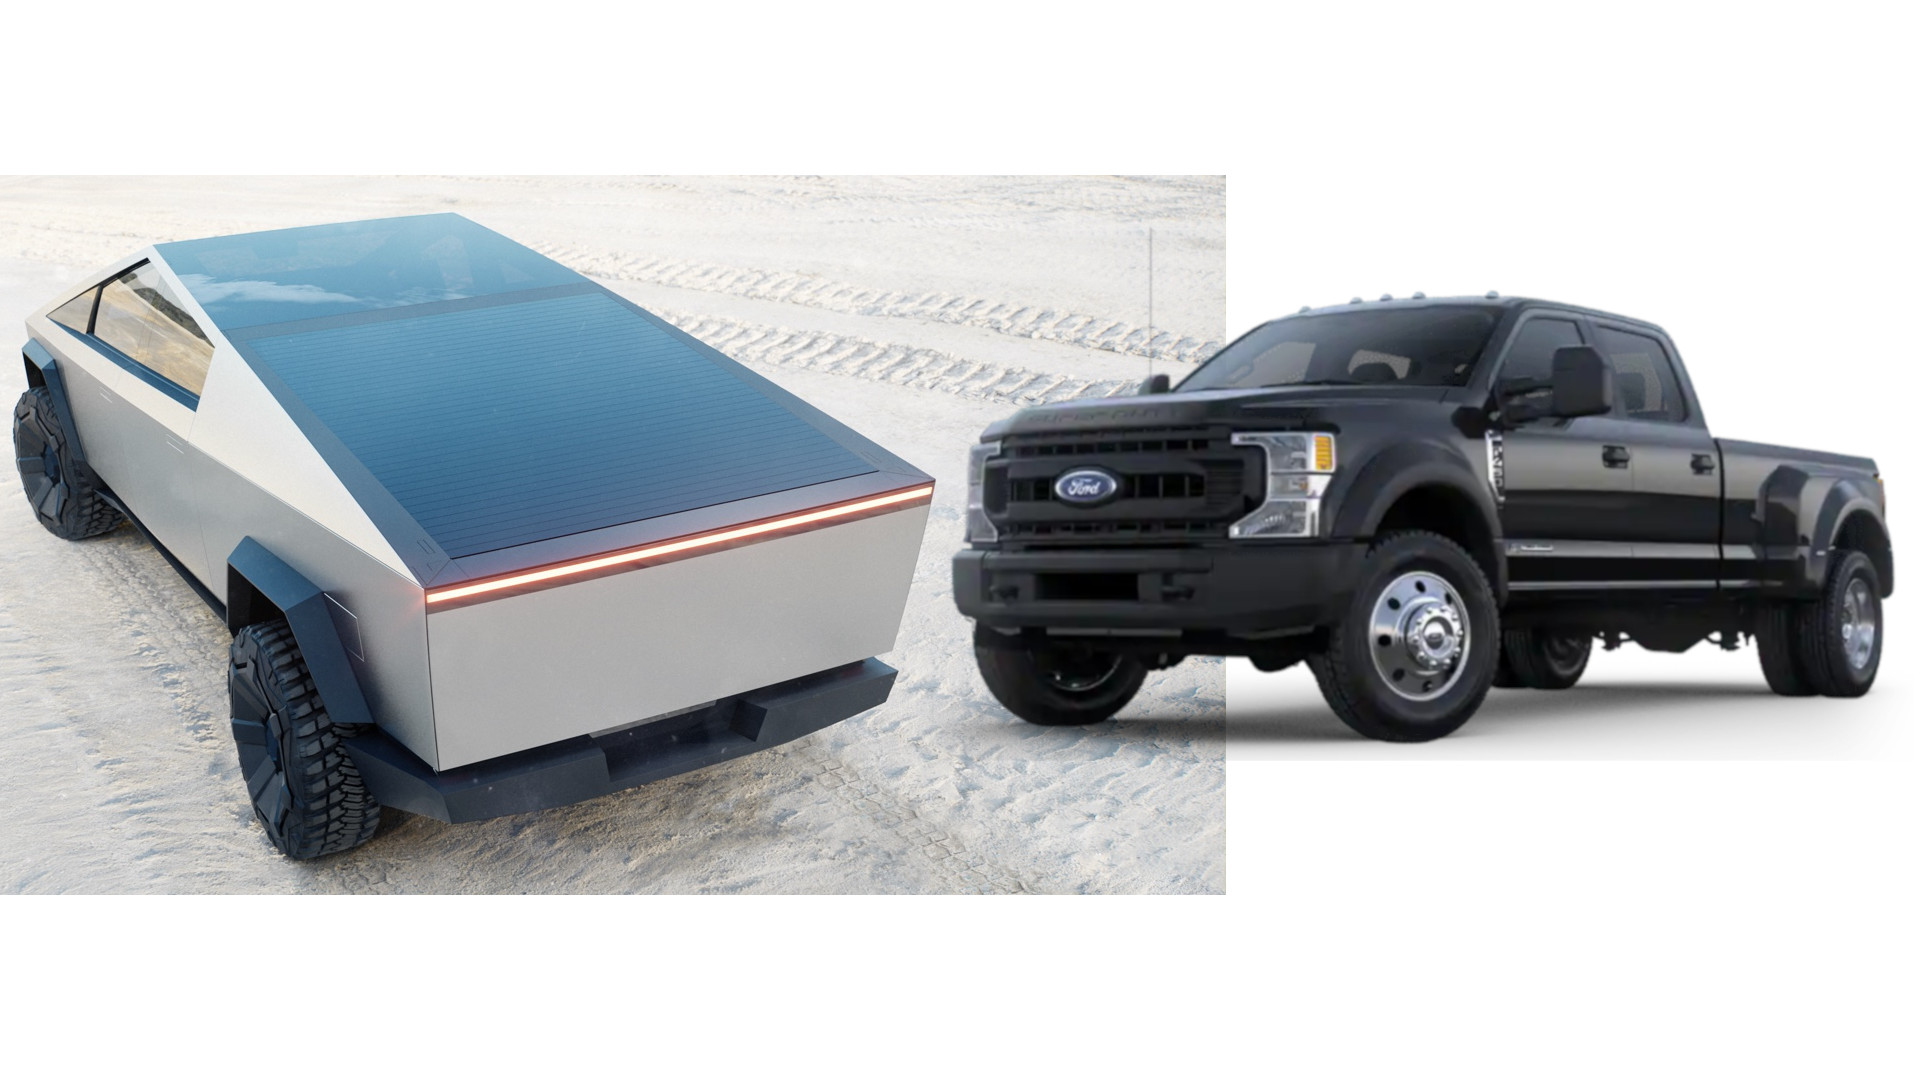 CyberTruck Vs. Ford F450